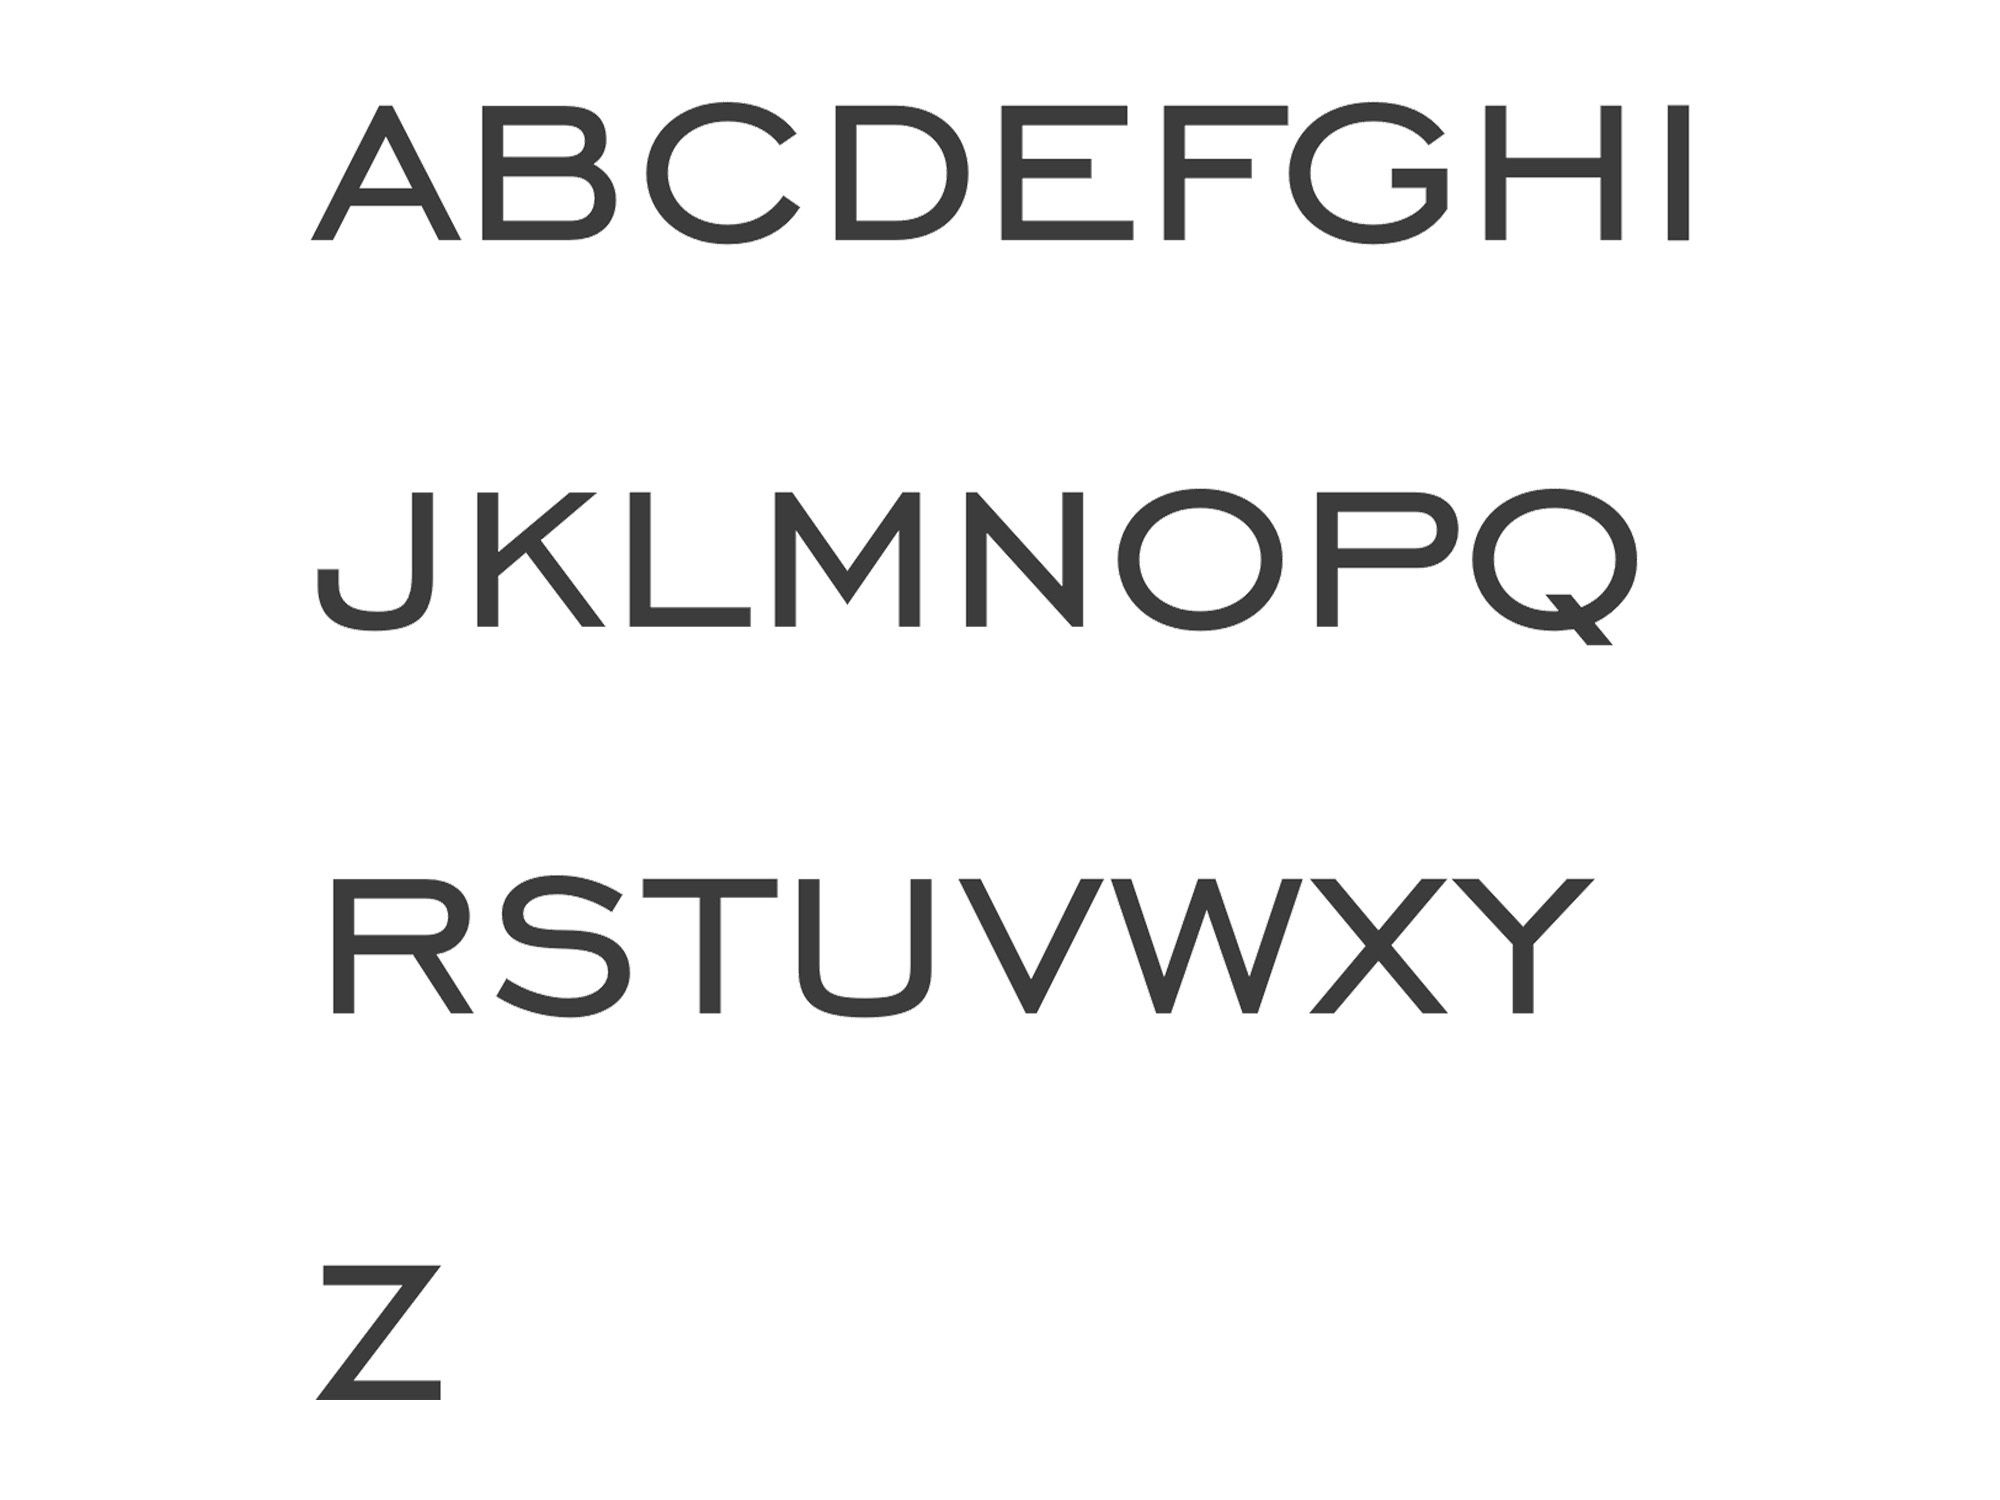 This Font Has Designs On Your Mind